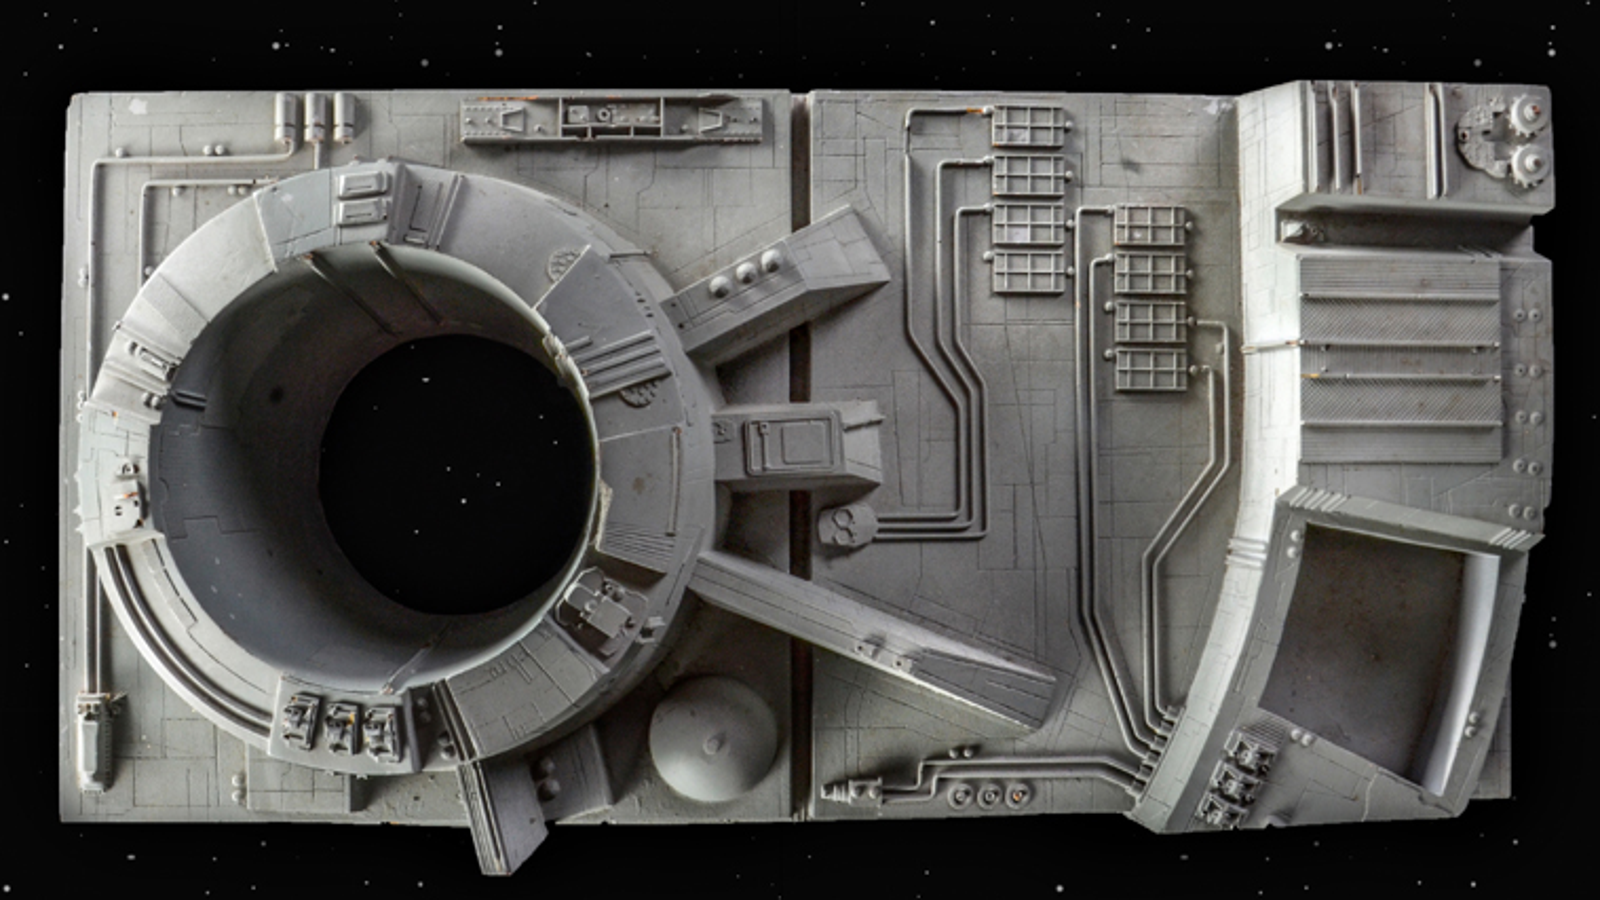 Ebay is Auctioning Off an Original Piece of the Death Star